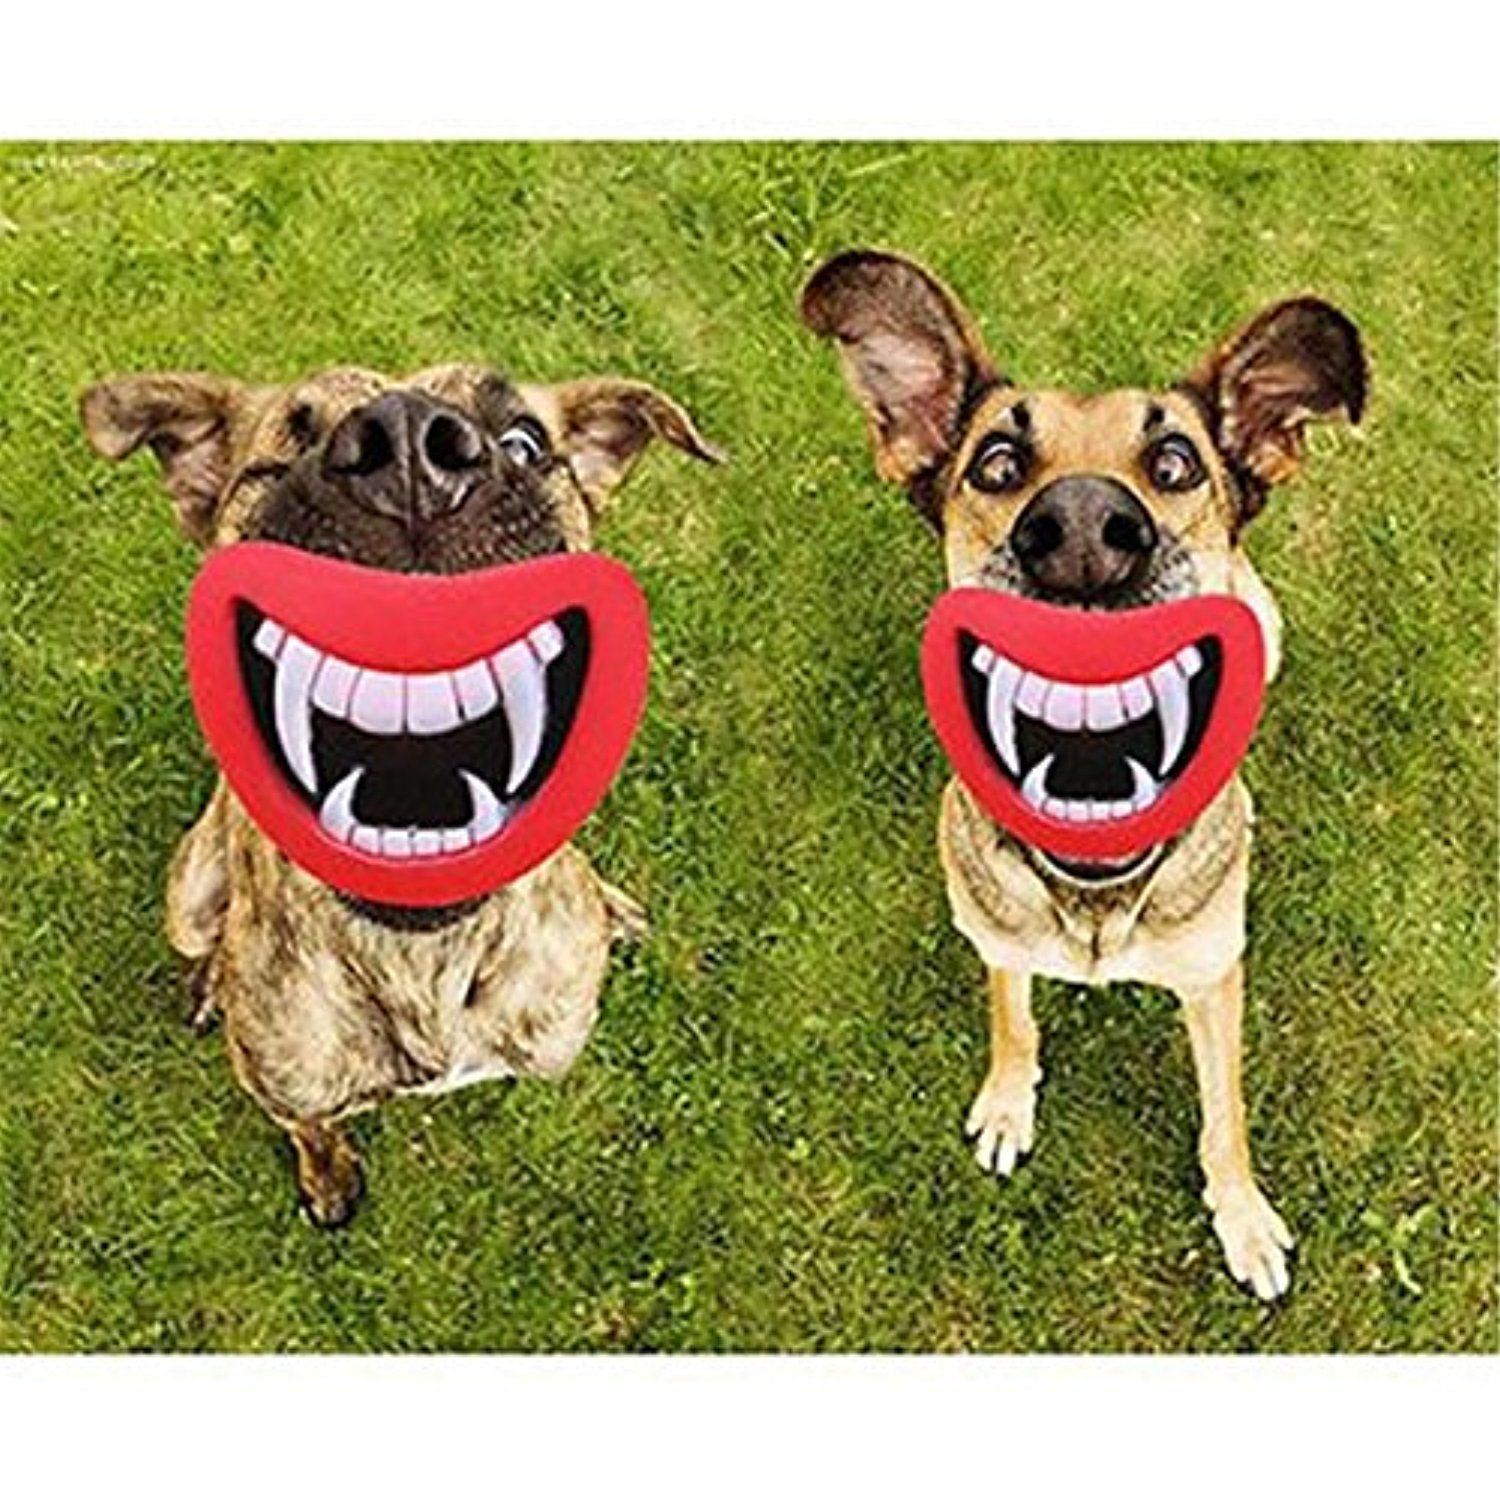 Funny pet dog teeth vinyl toy chew squeaky sound puppy dogs play